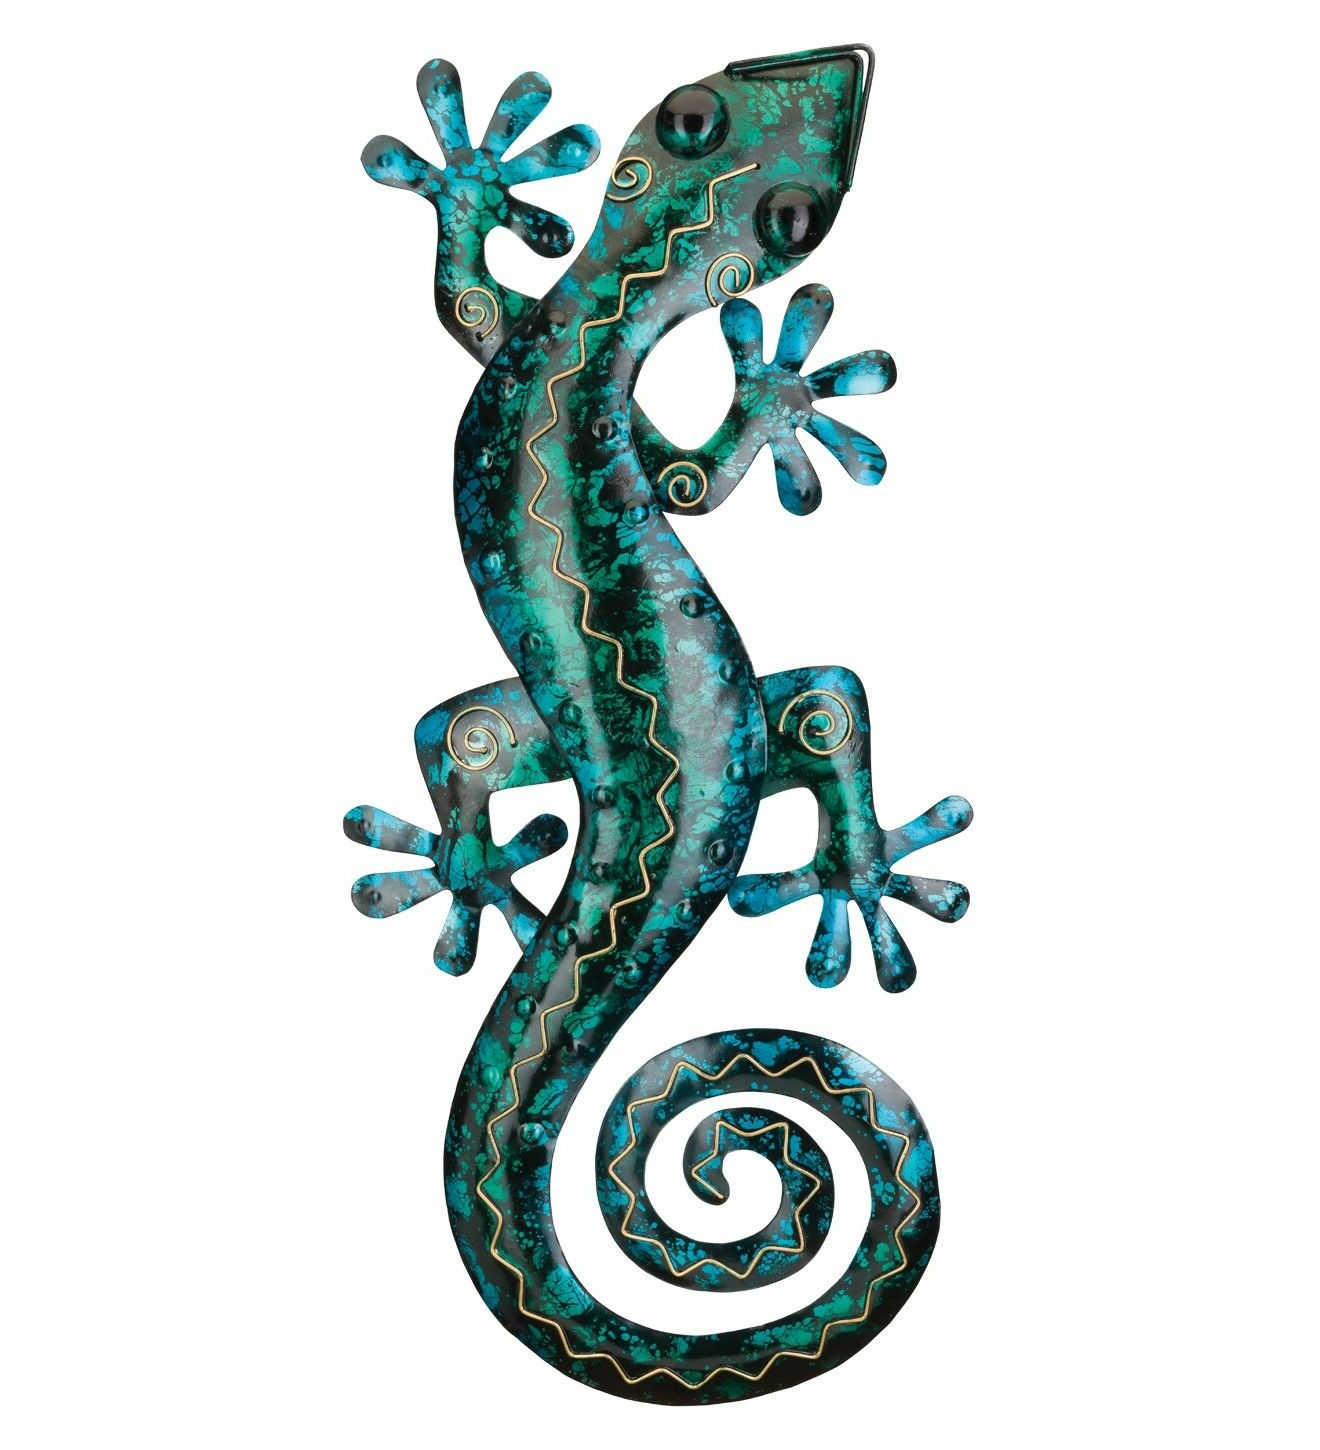 "Gecko Wall Decor Pertaining To Most Popular Gecko Wall Decor – Gecko Wall Decor 29"" – Turquoise – Regal (View 10 of 20)"